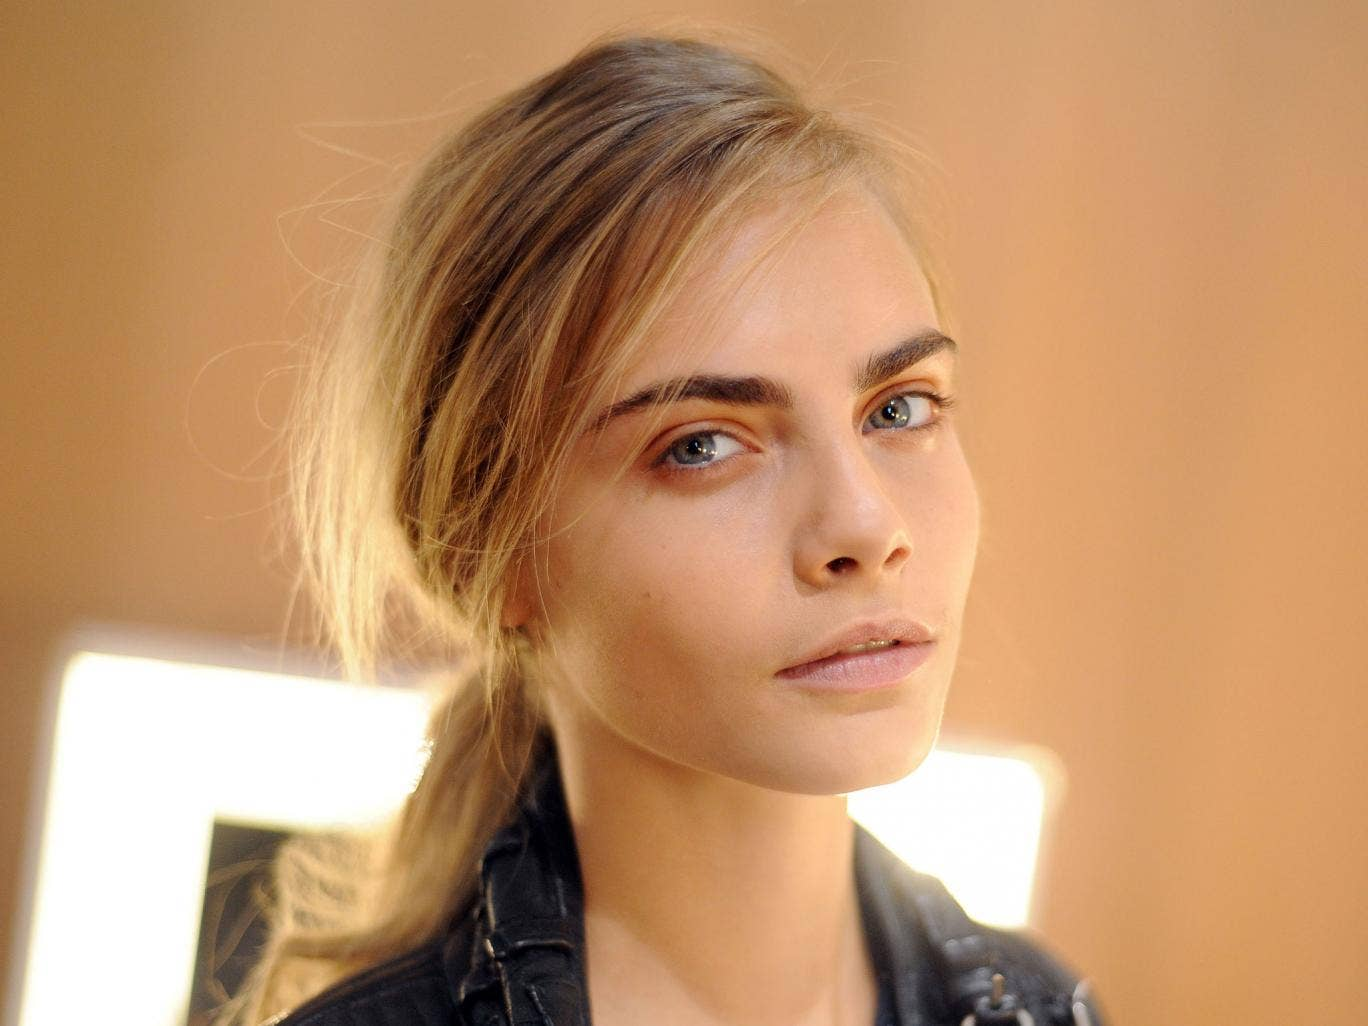 Supermodel Cara Delevingne will make her TV acting debut in Timeless alongside veteran actress Sylvia Syms